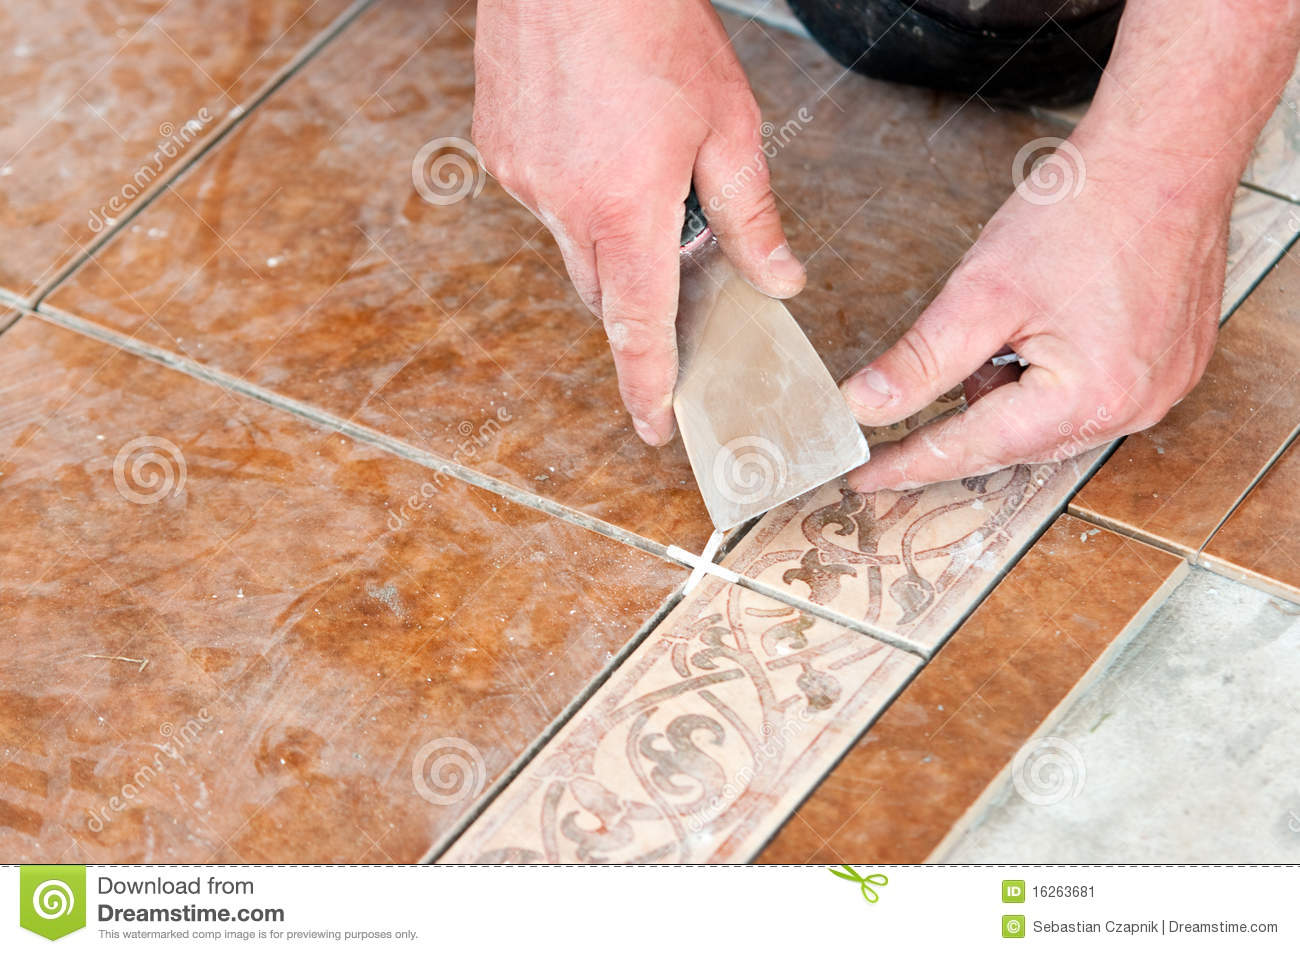 Man installing floor tile stock image image of tiled 16263681 man installing floor tile dailygadgetfo Image collections